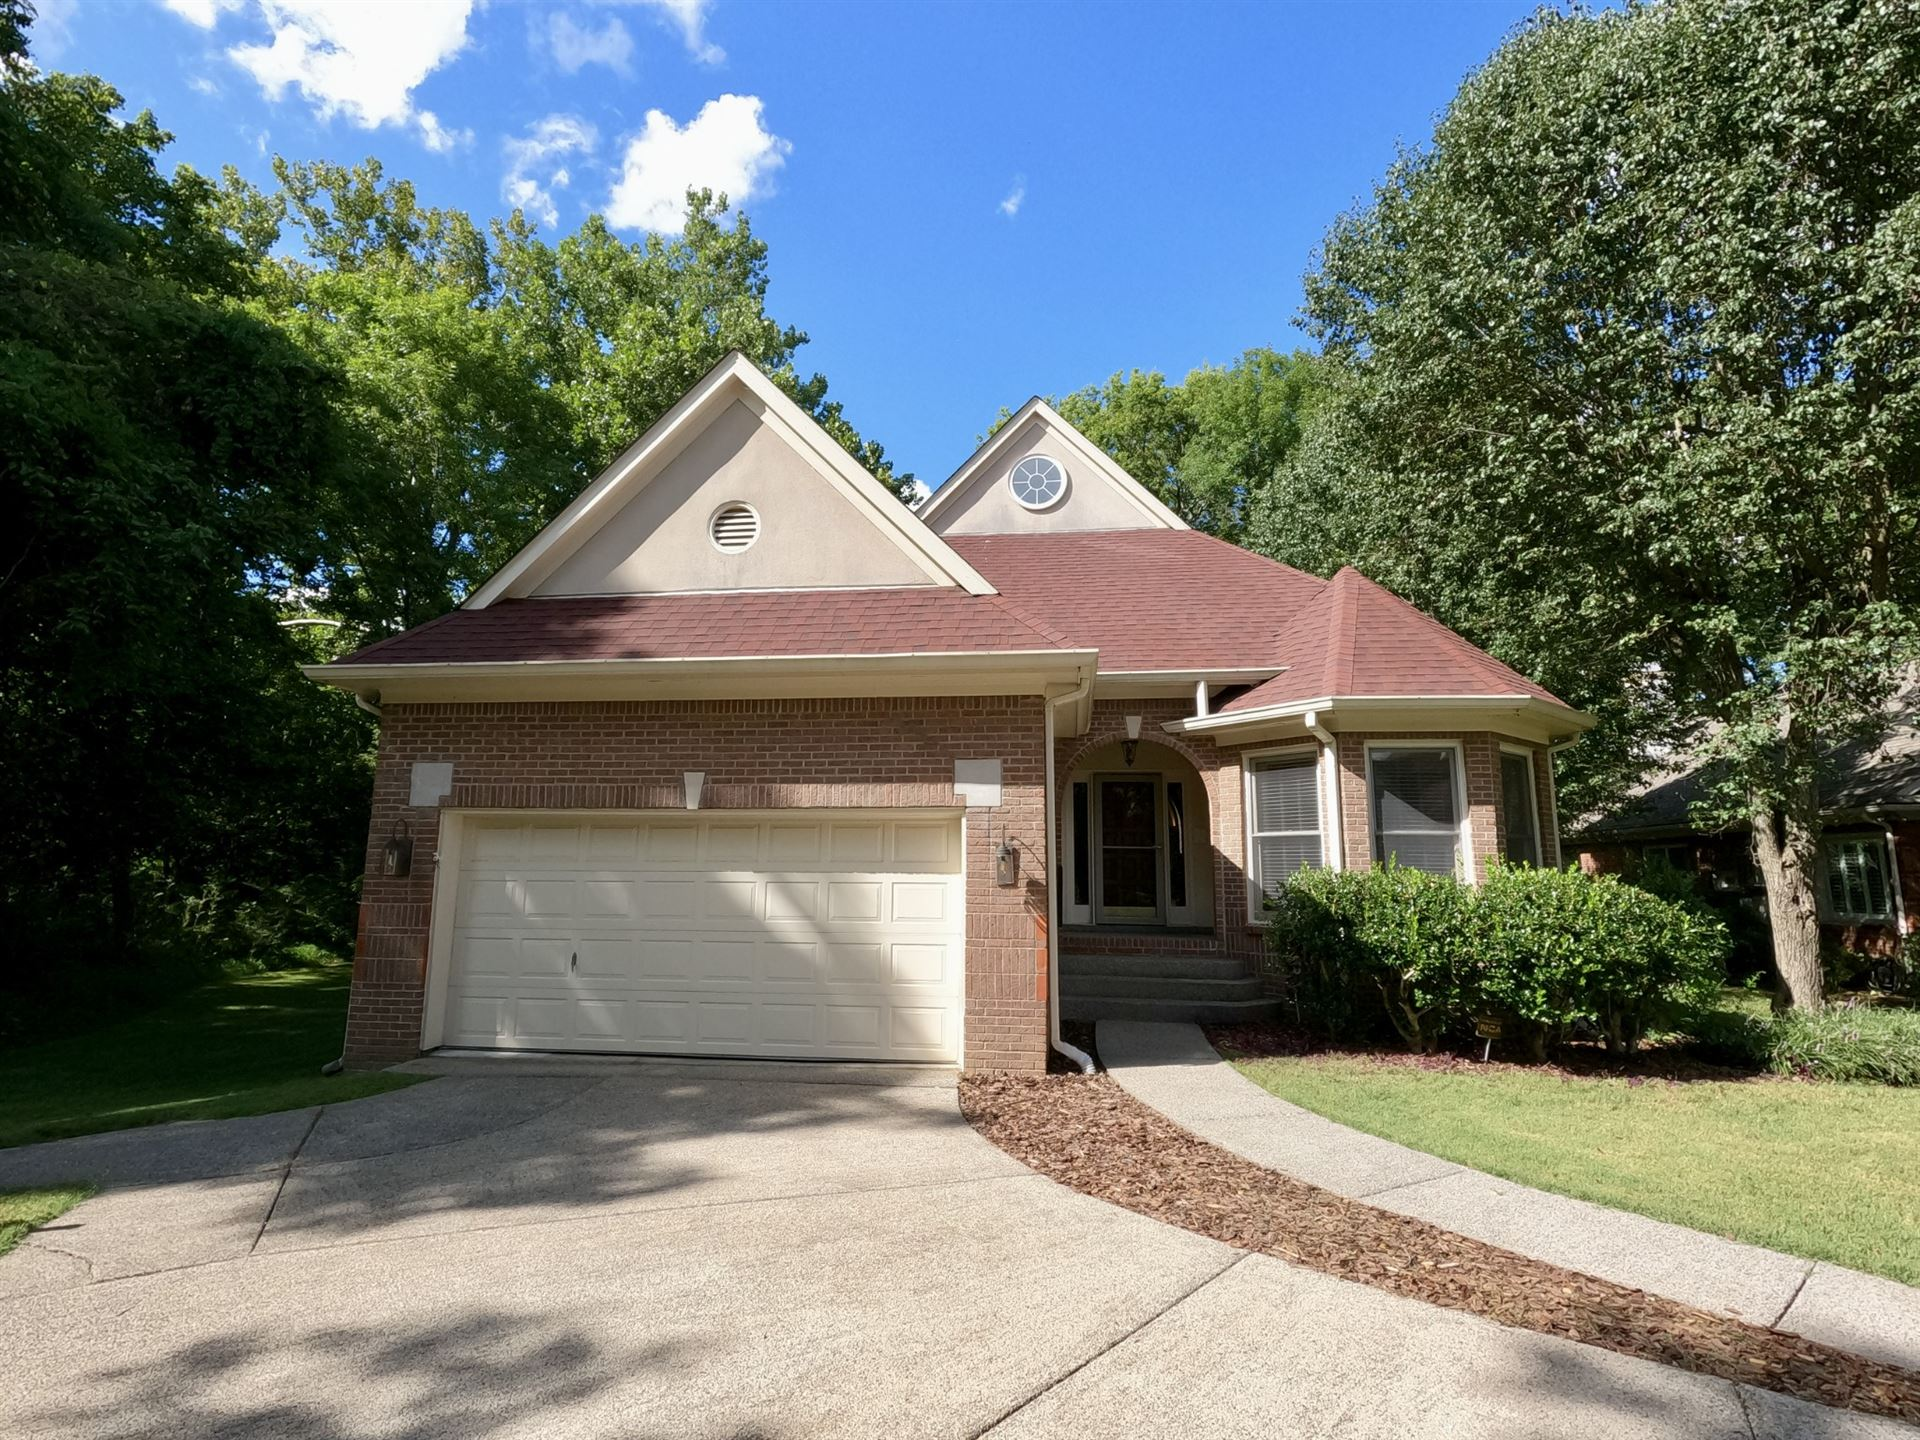 Photo of 6 Todgers Ct, Brentwood, TN 37027 (MLS # 2290811)